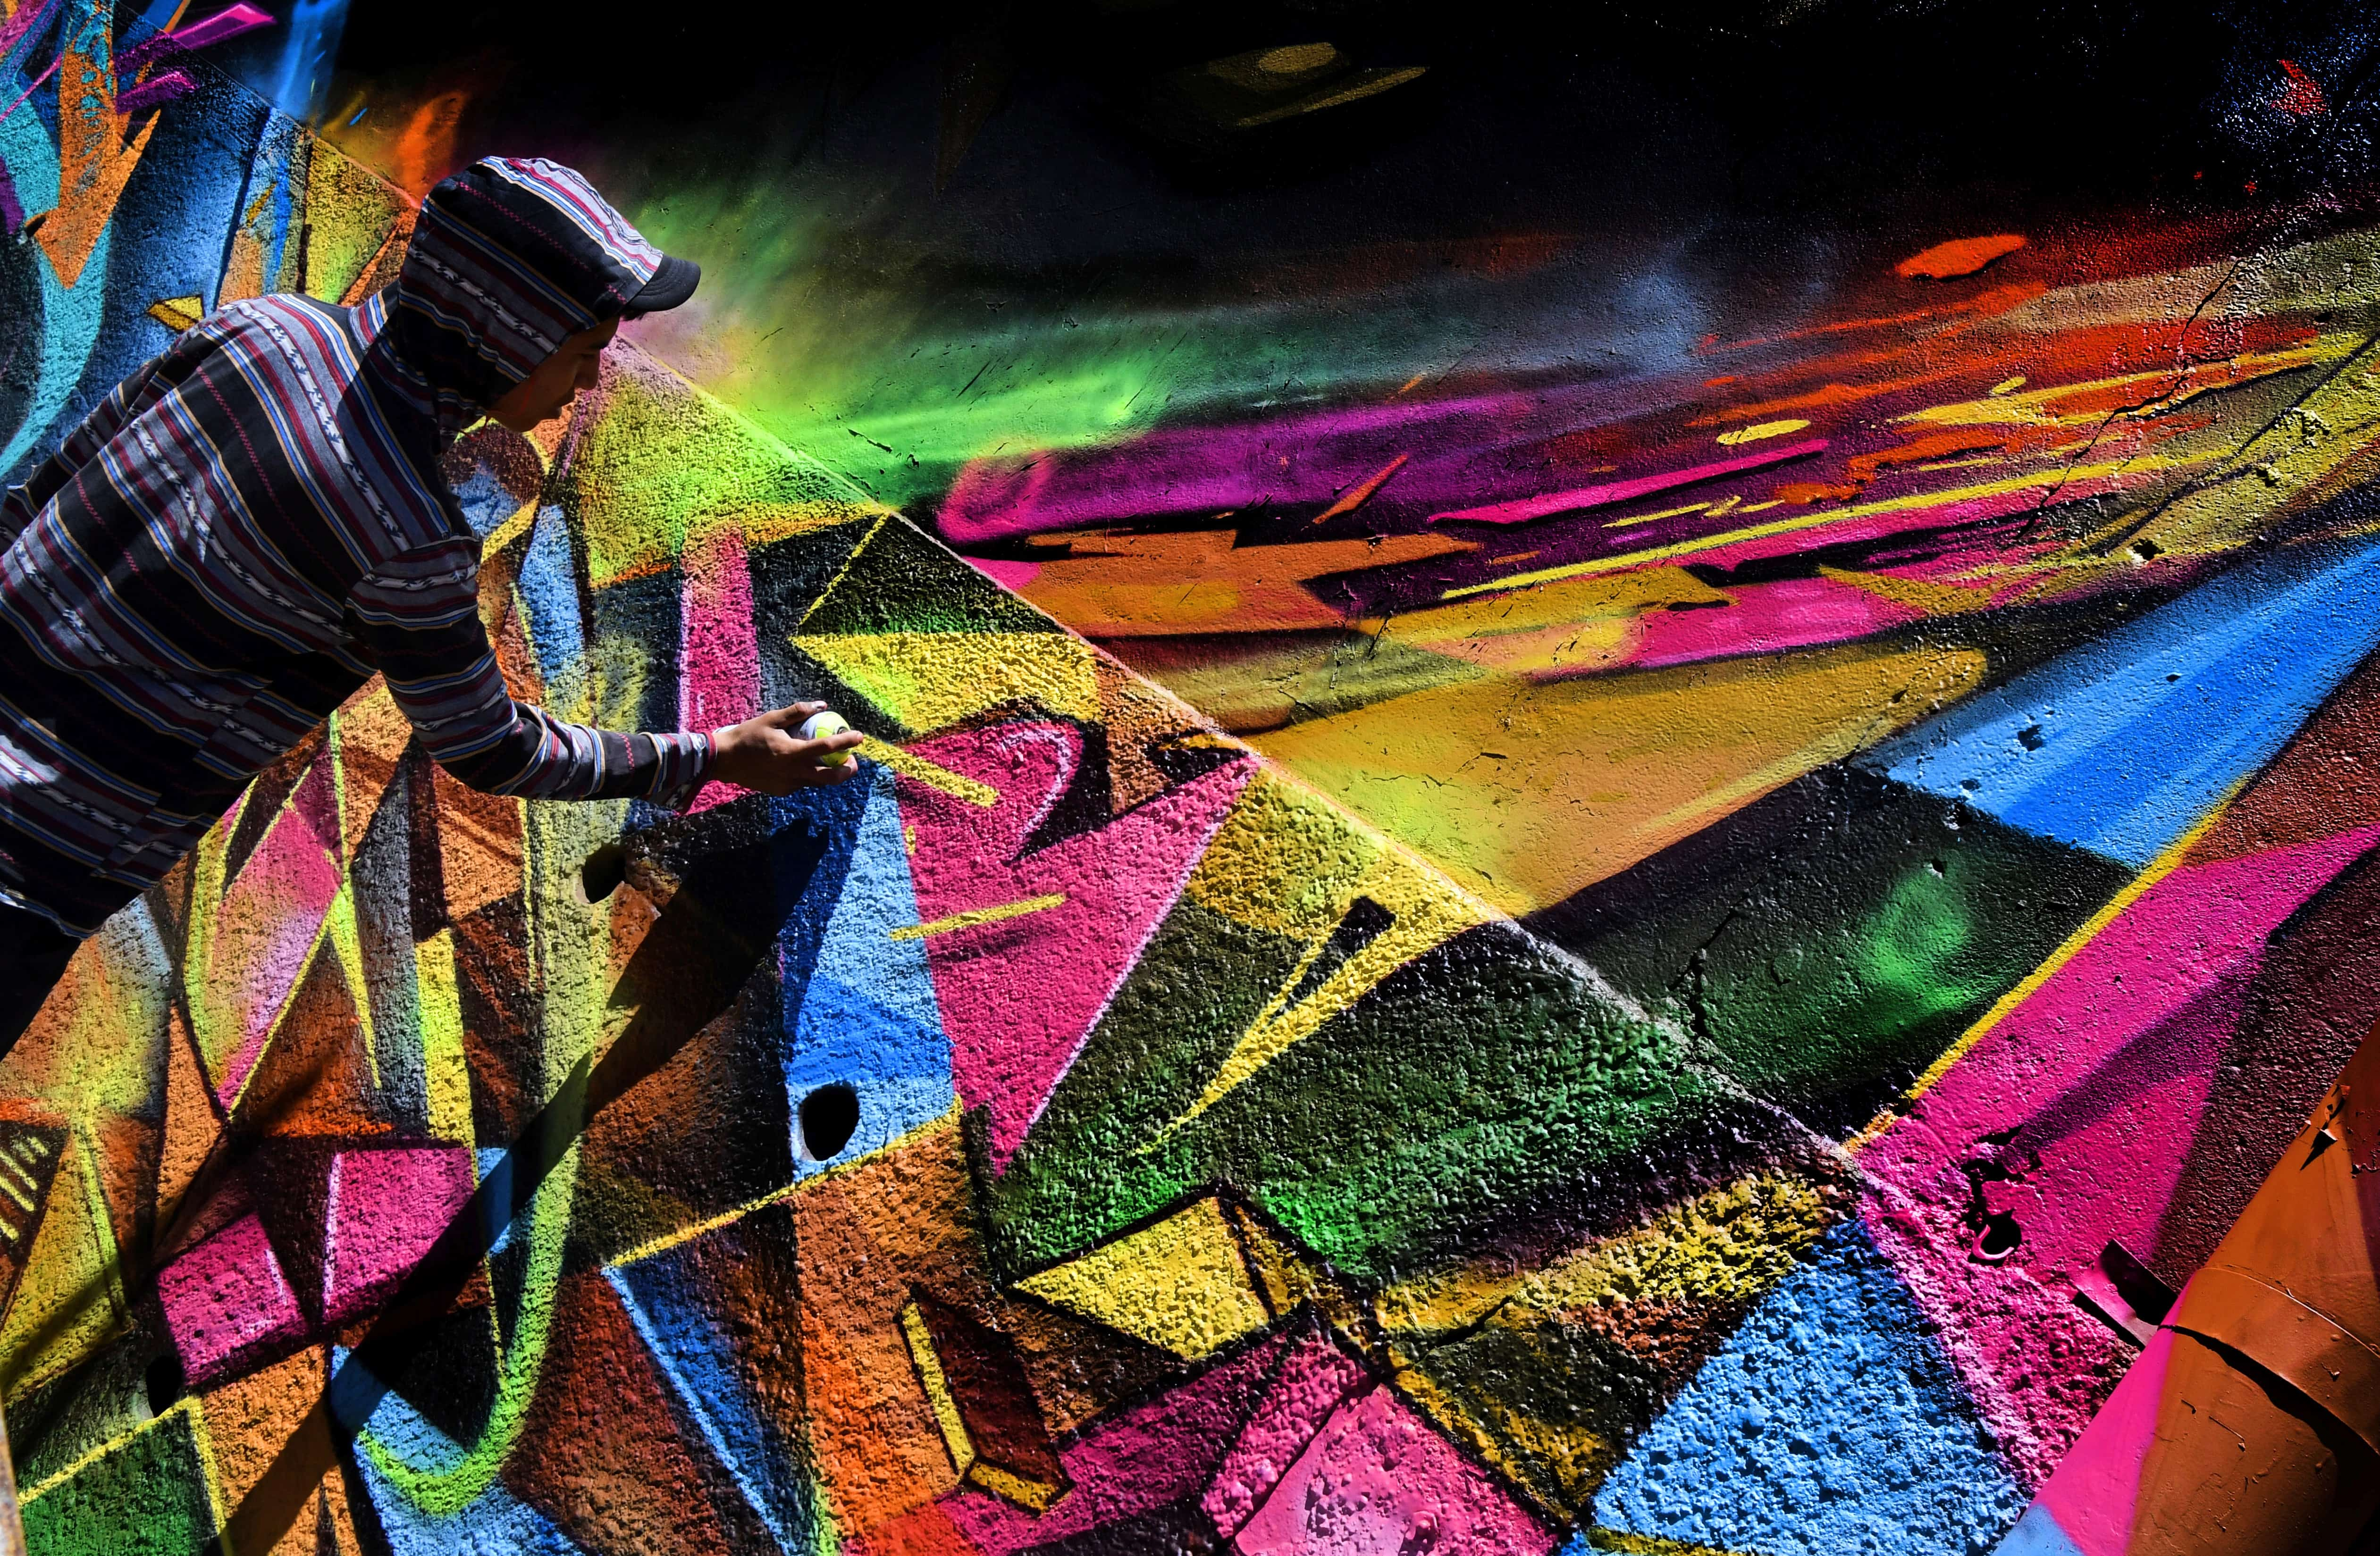 An artist works on a mural during the Aliados Festival in San José, Costa Rica, on March 11, 2018.